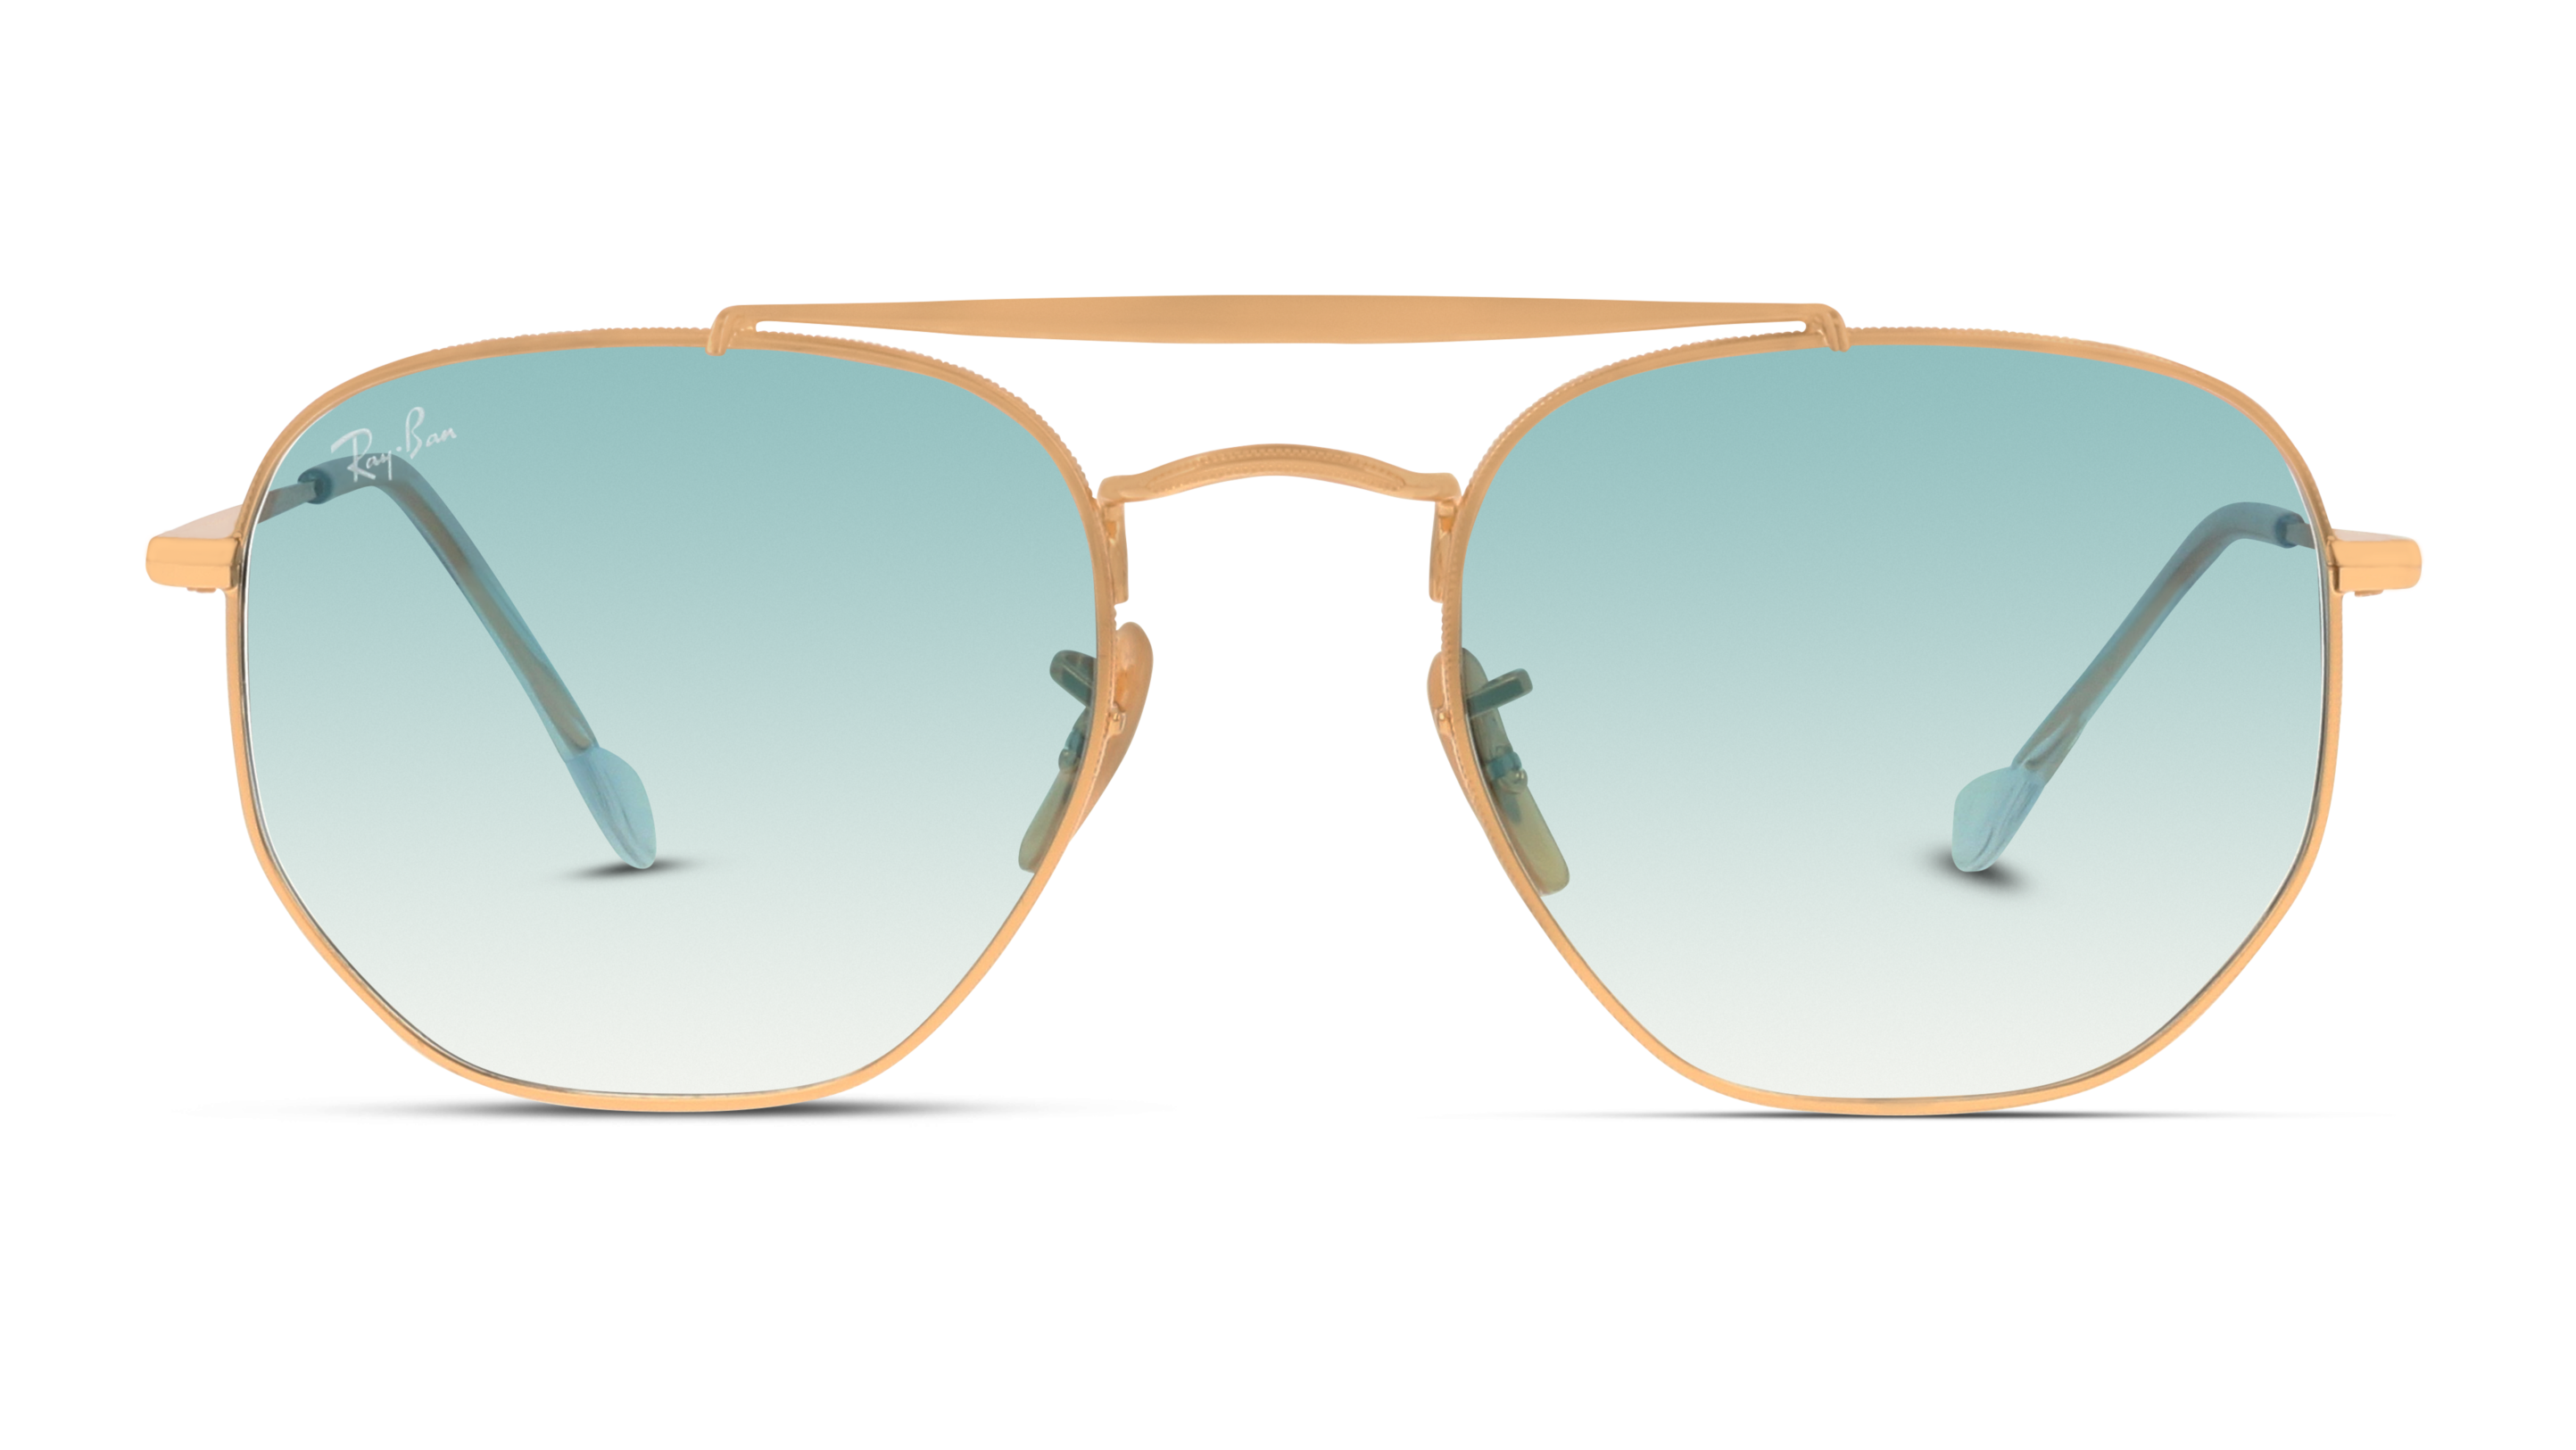 Front Ray-Ban Ray-Ban 0RB3648 001/3F 54/21 Goud/Blauw